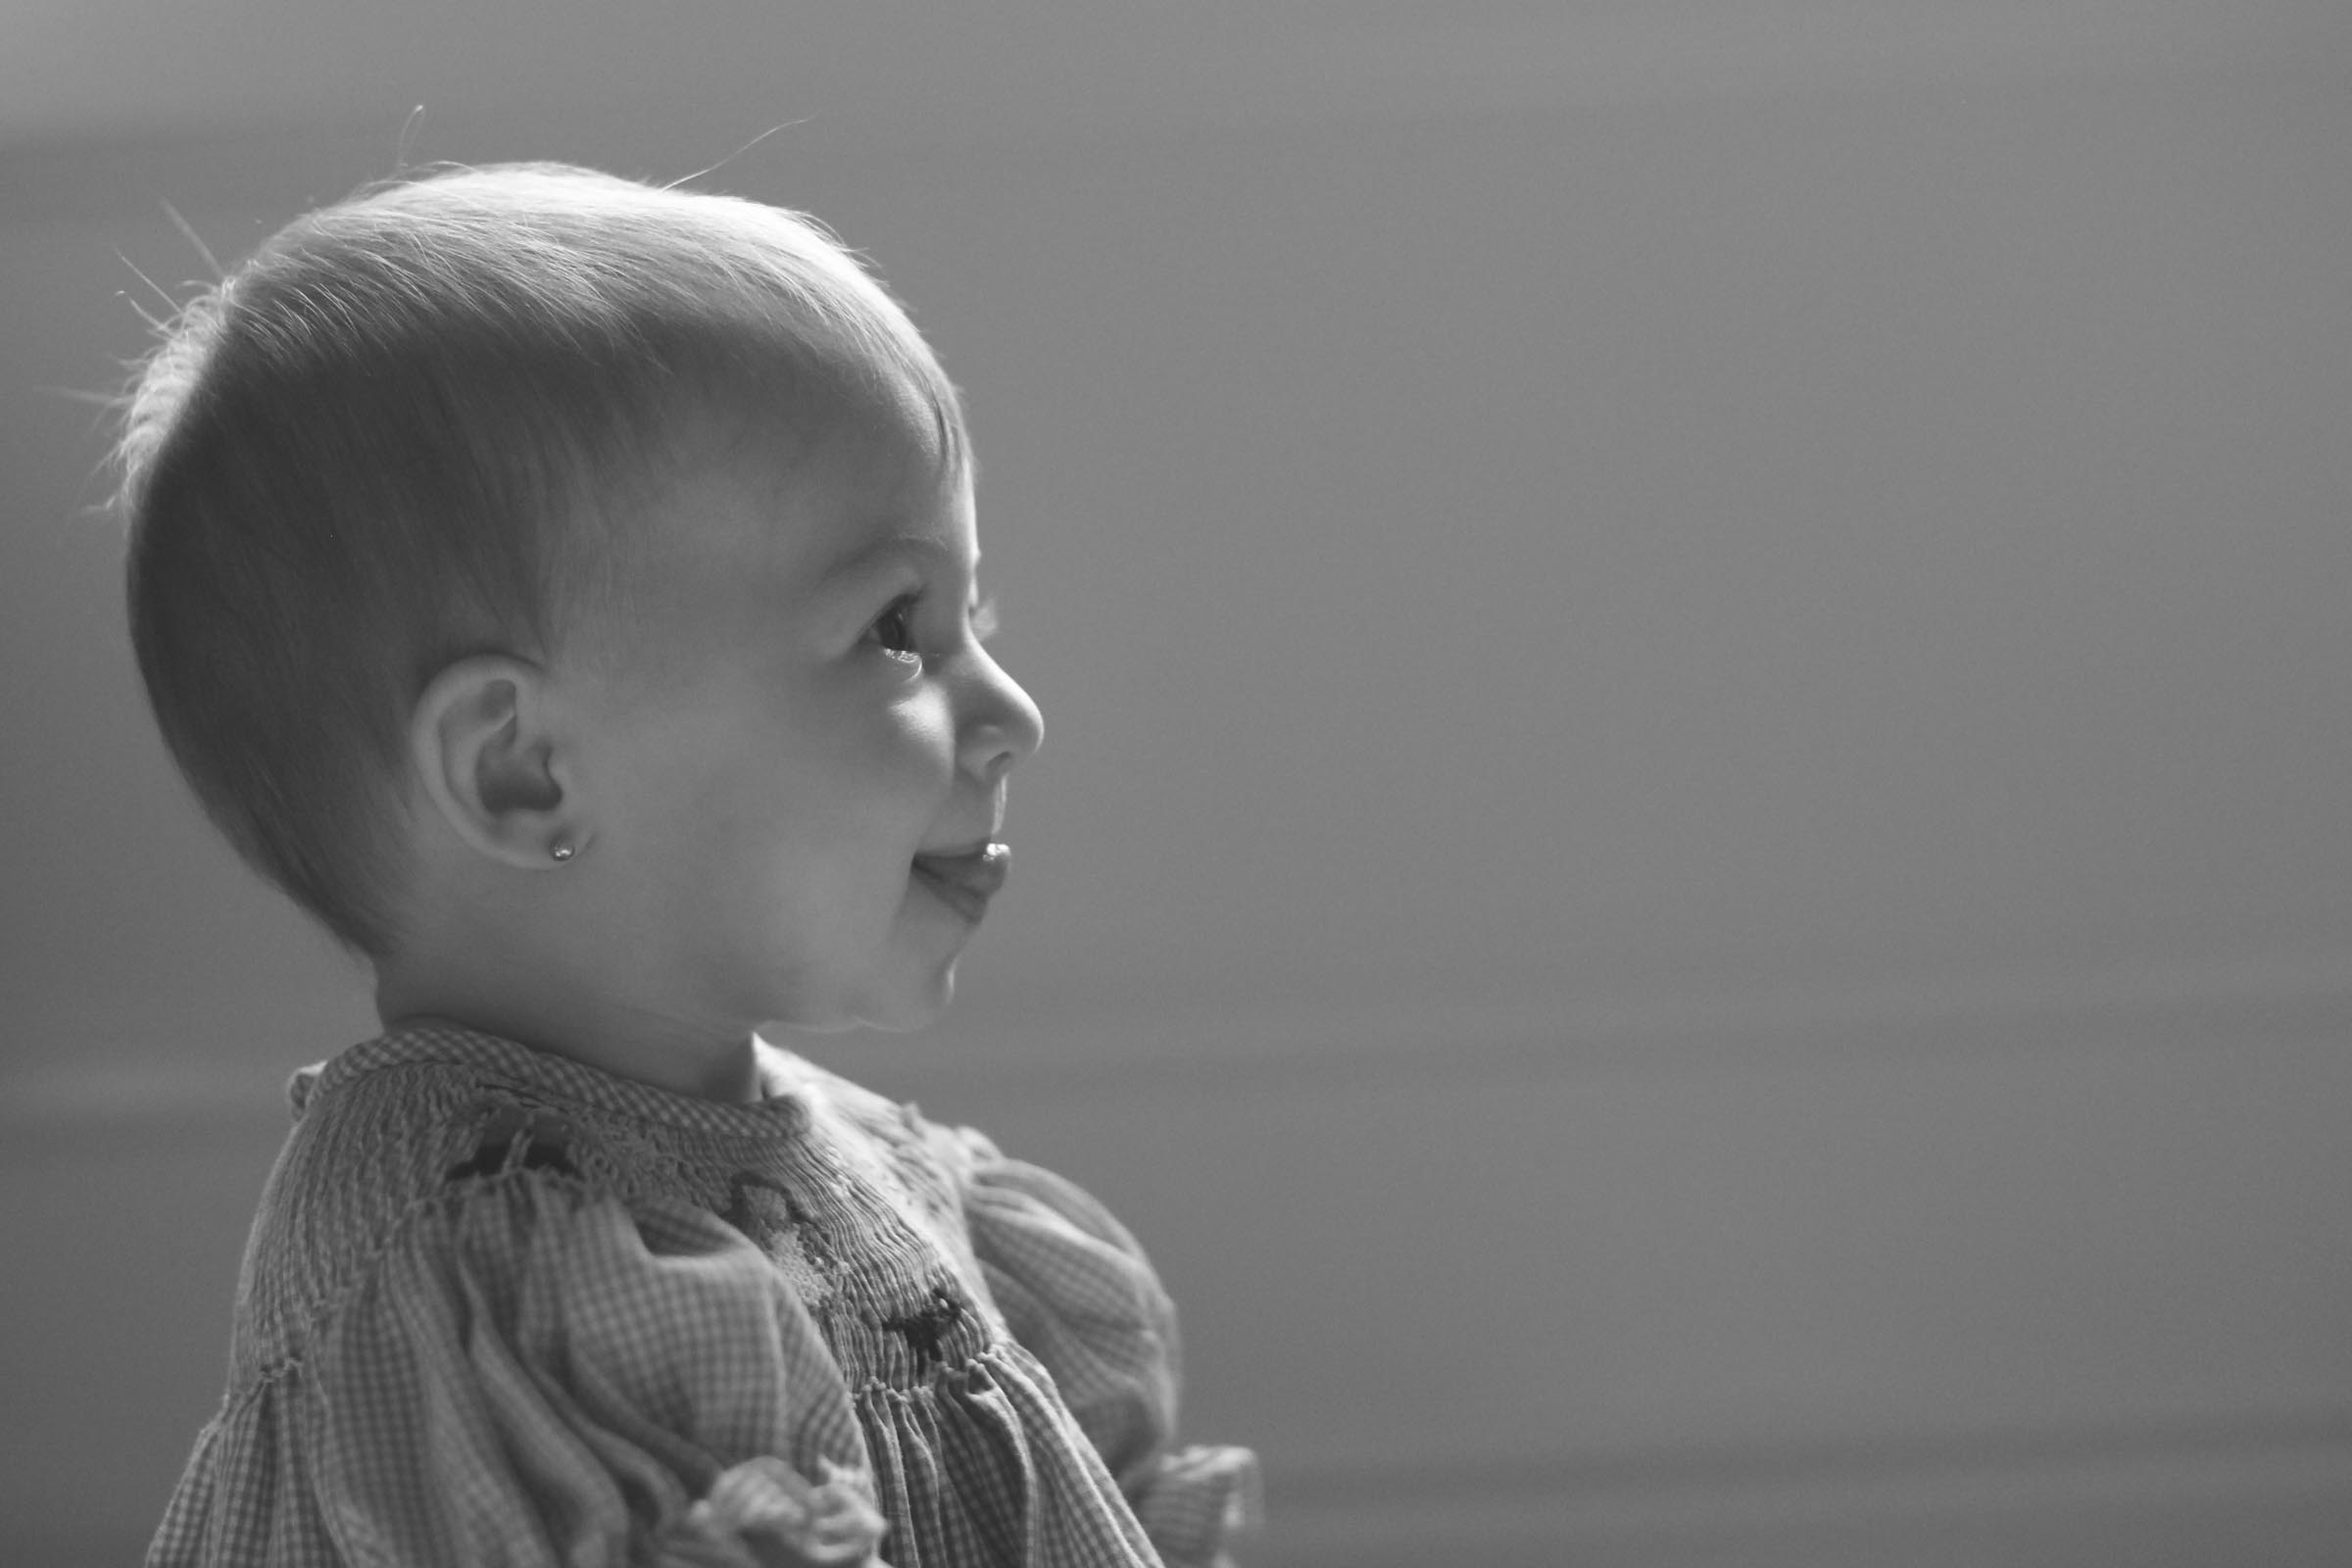 ashley-landry-photography-raymond-09-2016-28-of-41